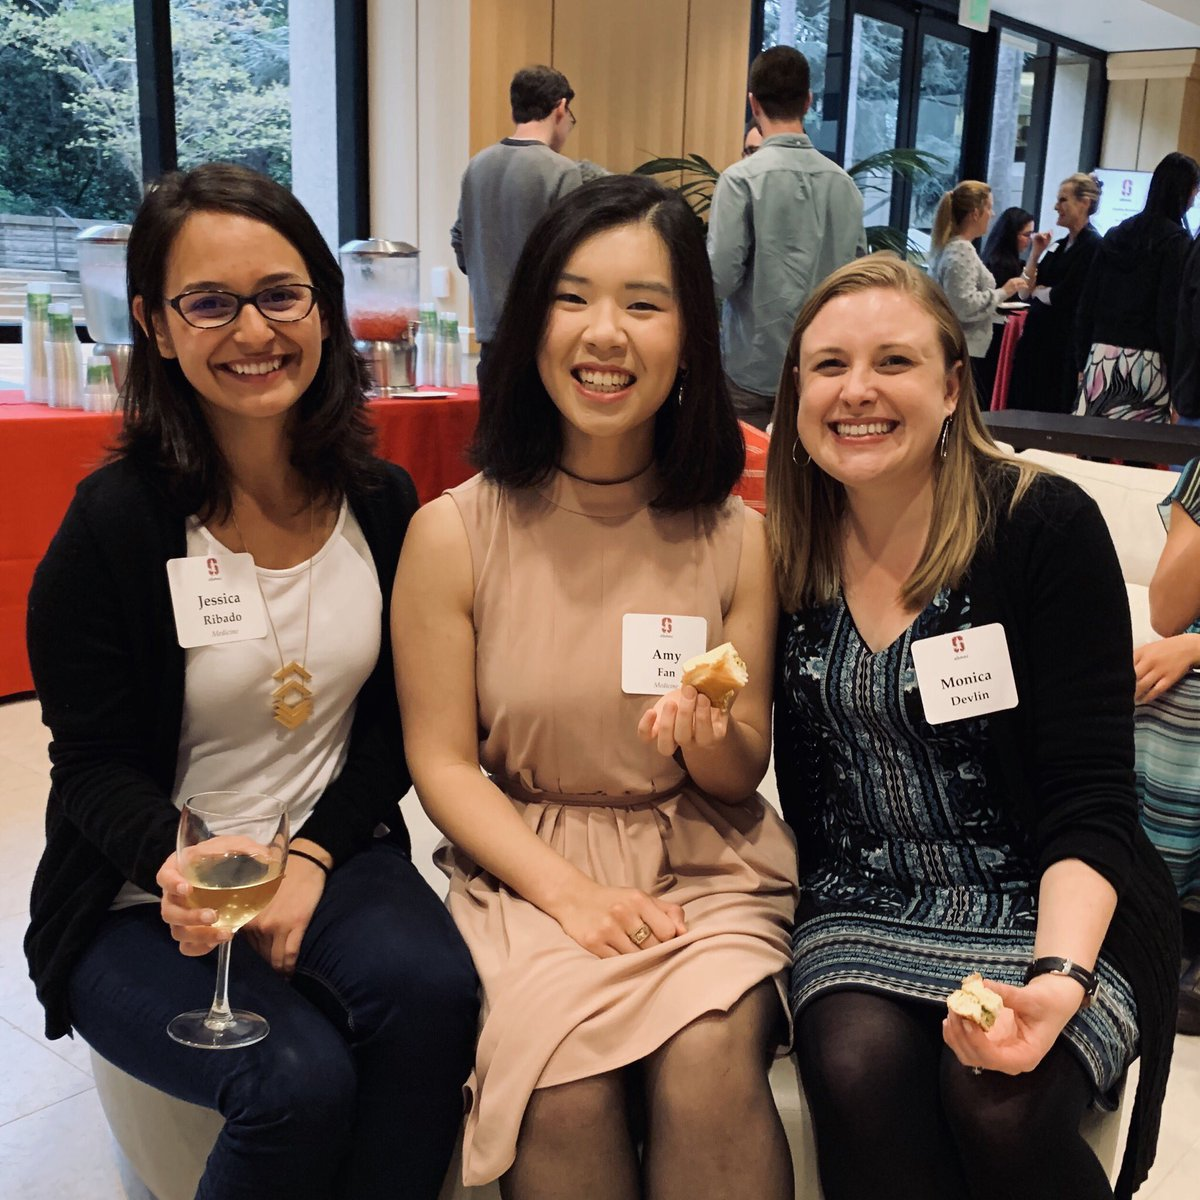 Congratulations to all of the @StanfordAlumni Community Impact Awardees, including @sunying12 & @JessicaRibado (whom I finally got to meet for the first time!)  Props to everyone who works to make Stanford better, and thank you to @monicakate & Cindy Ng for the nomination! 🙏🏻